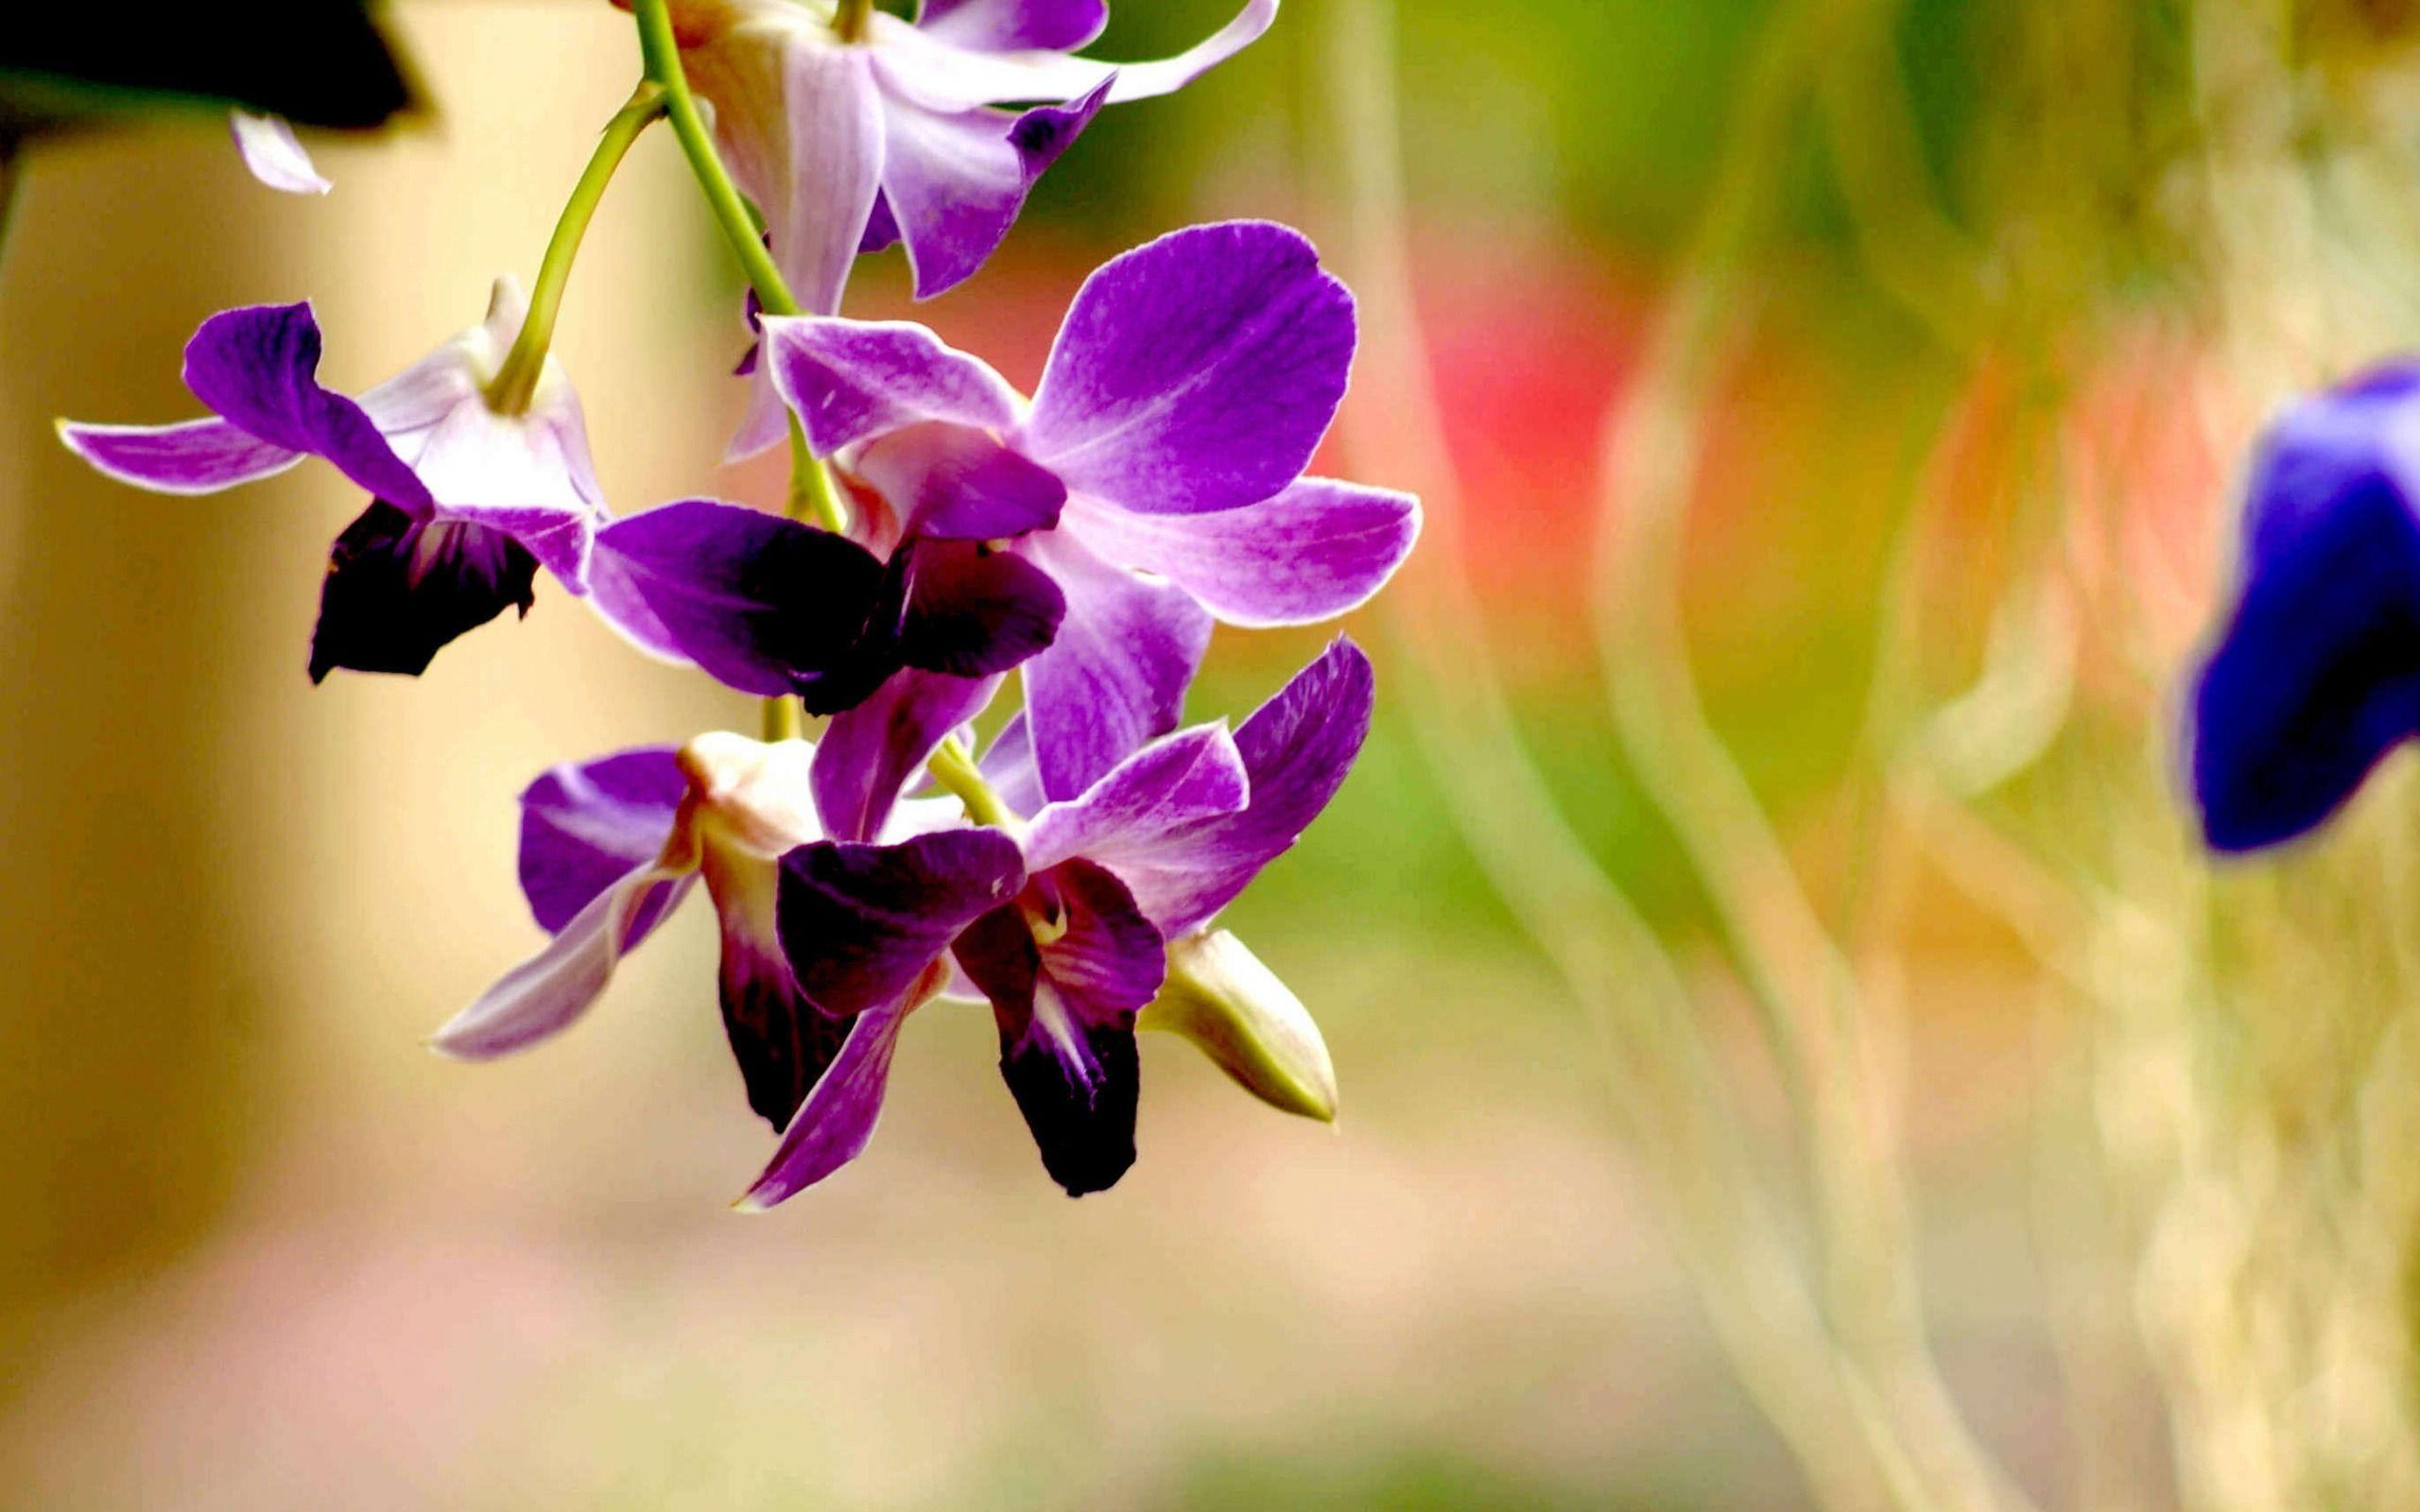 Habrumalas orchids in water wallpaper images - Purple Orchid Wallpapers Wallpaper Cave